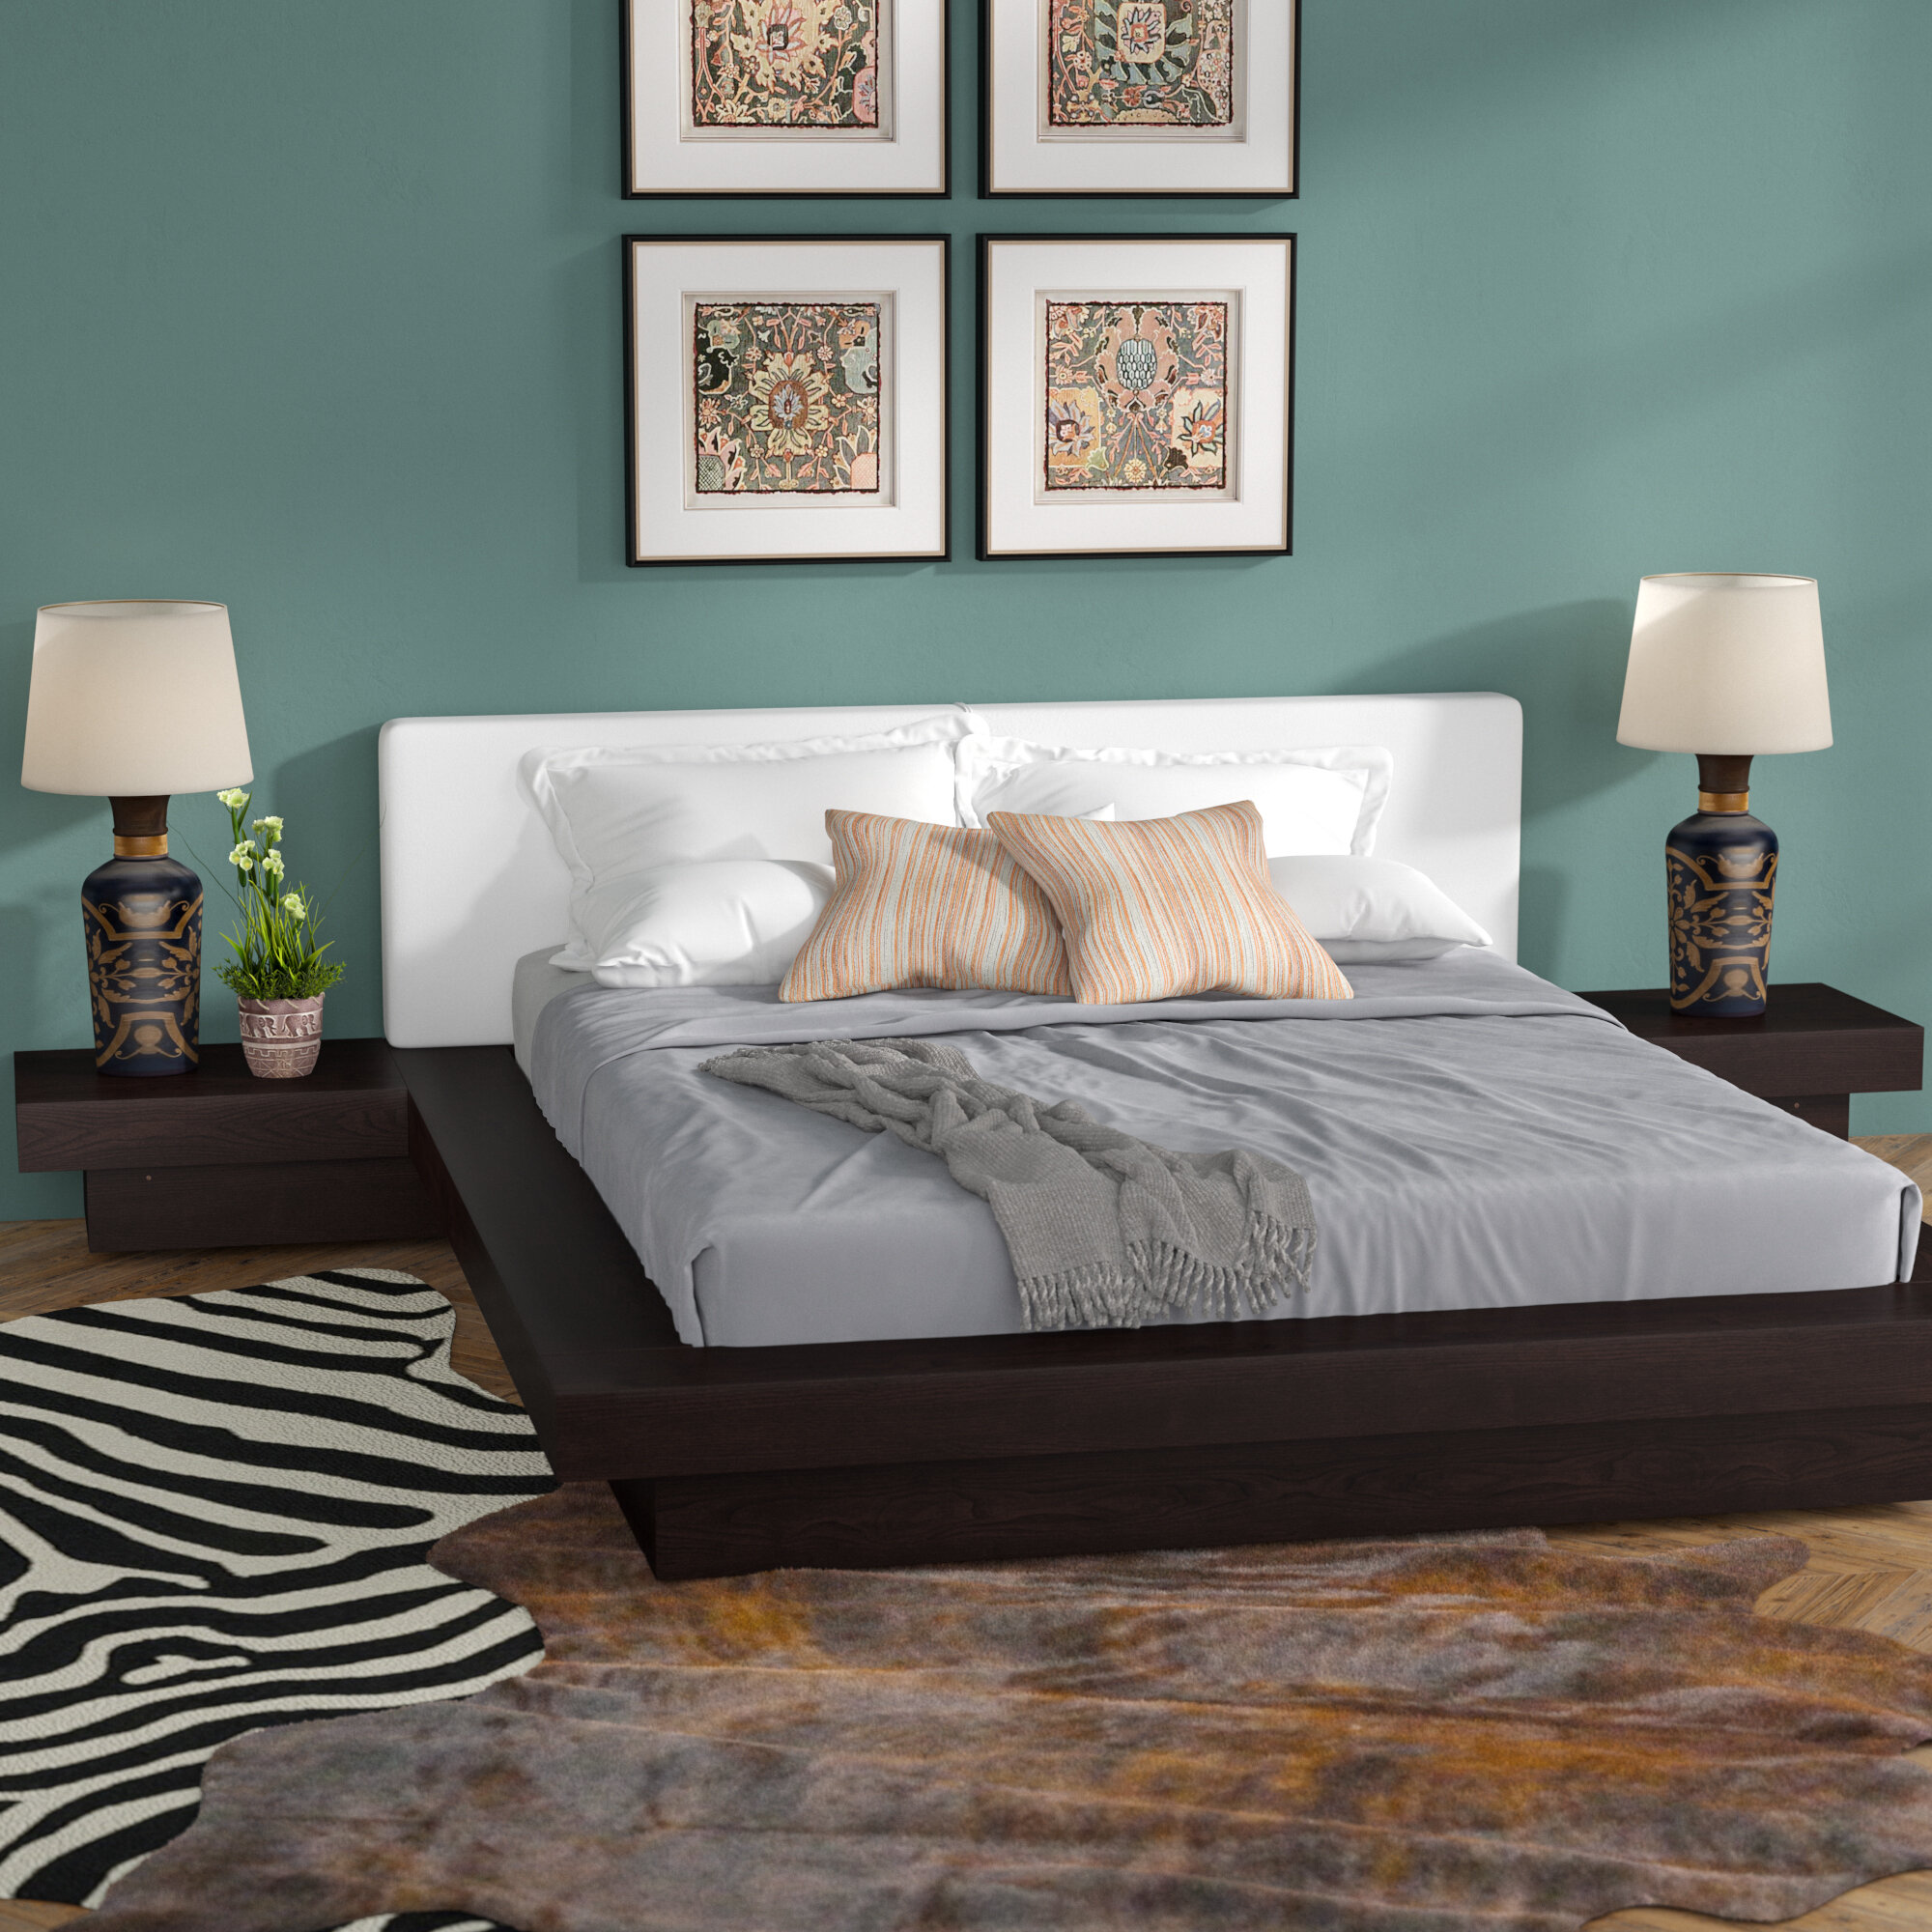 full popular steel cheap mattress frame black beds on complete metal drawers trundle bed low gallery of bedroom leather fancy platform bedrooms modern large twin frames pictures king storage furniture size with sets as and also queen